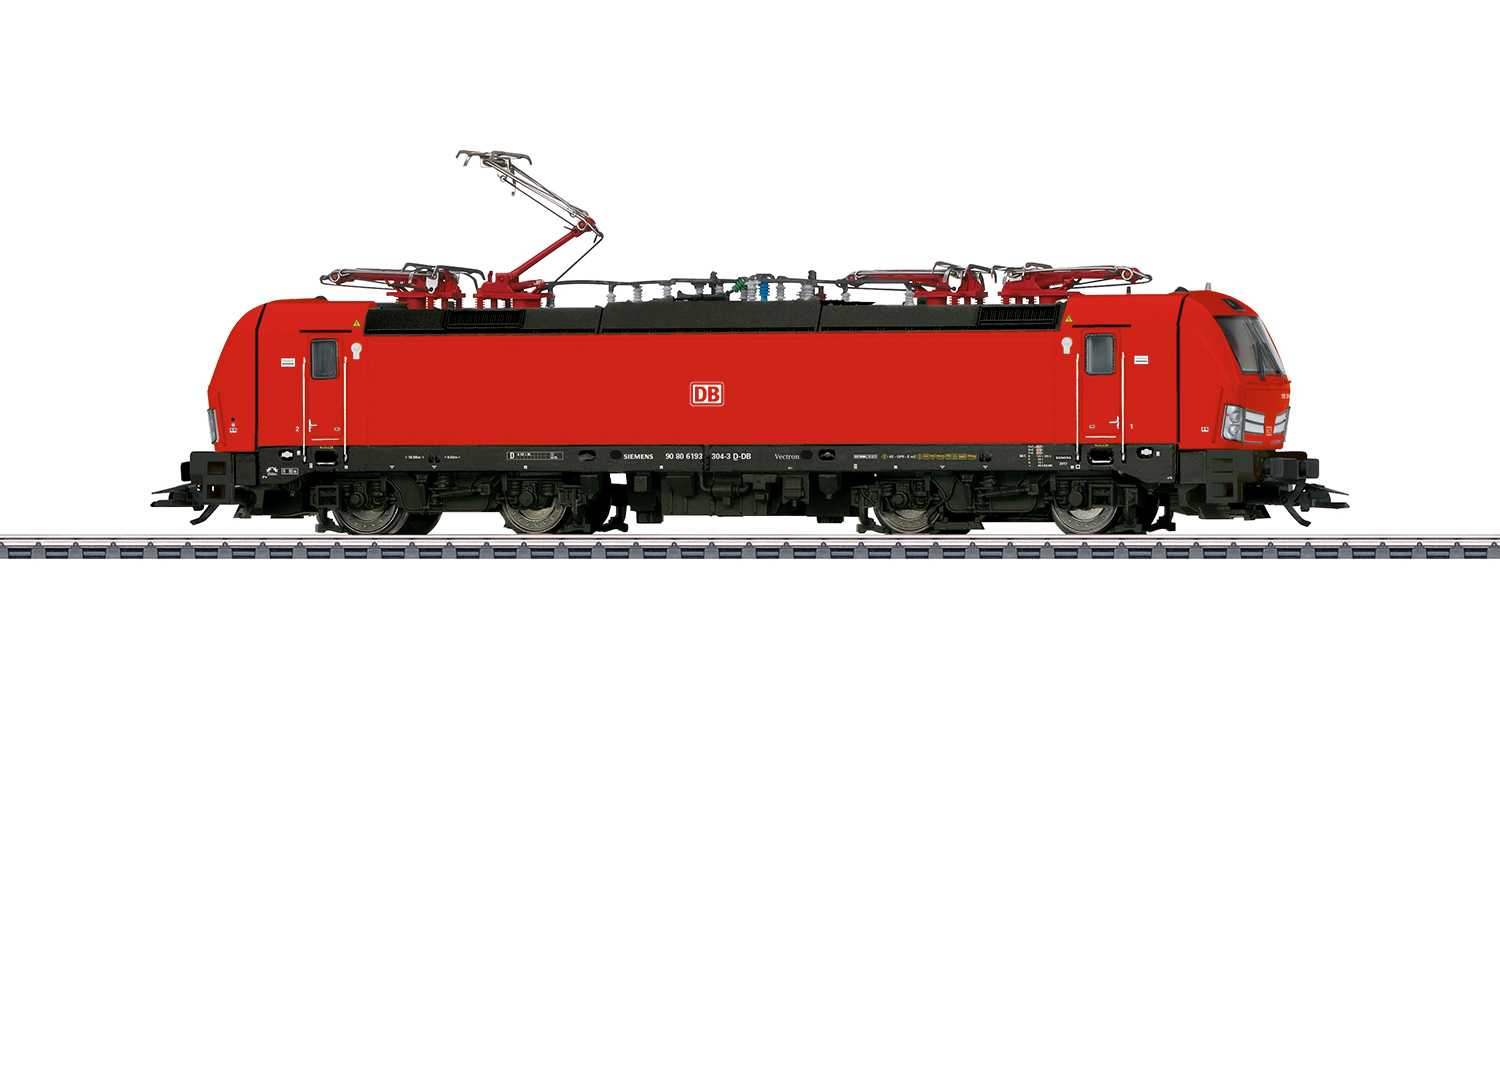 Class 193 Electric Locomotive